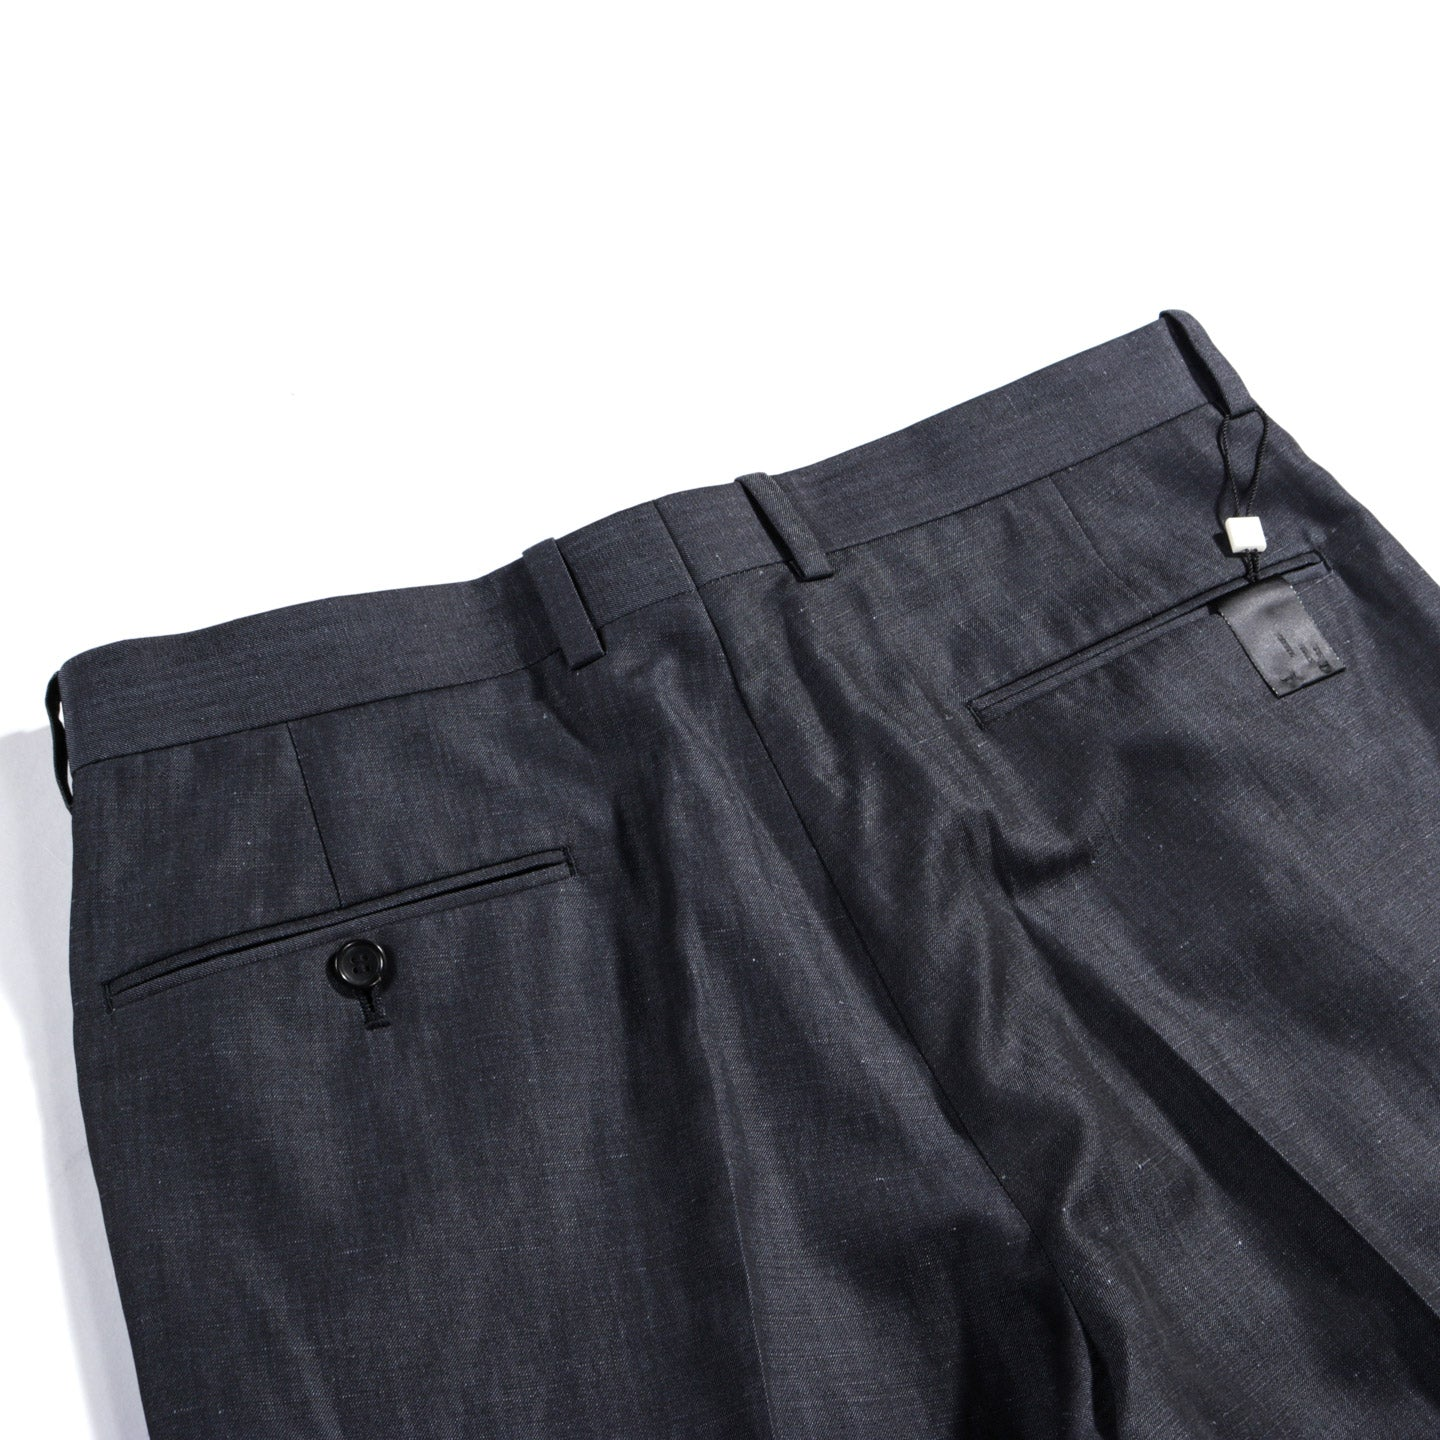 N.HOOLYWOOD 281-PT04 SUIT PANTS NAVY